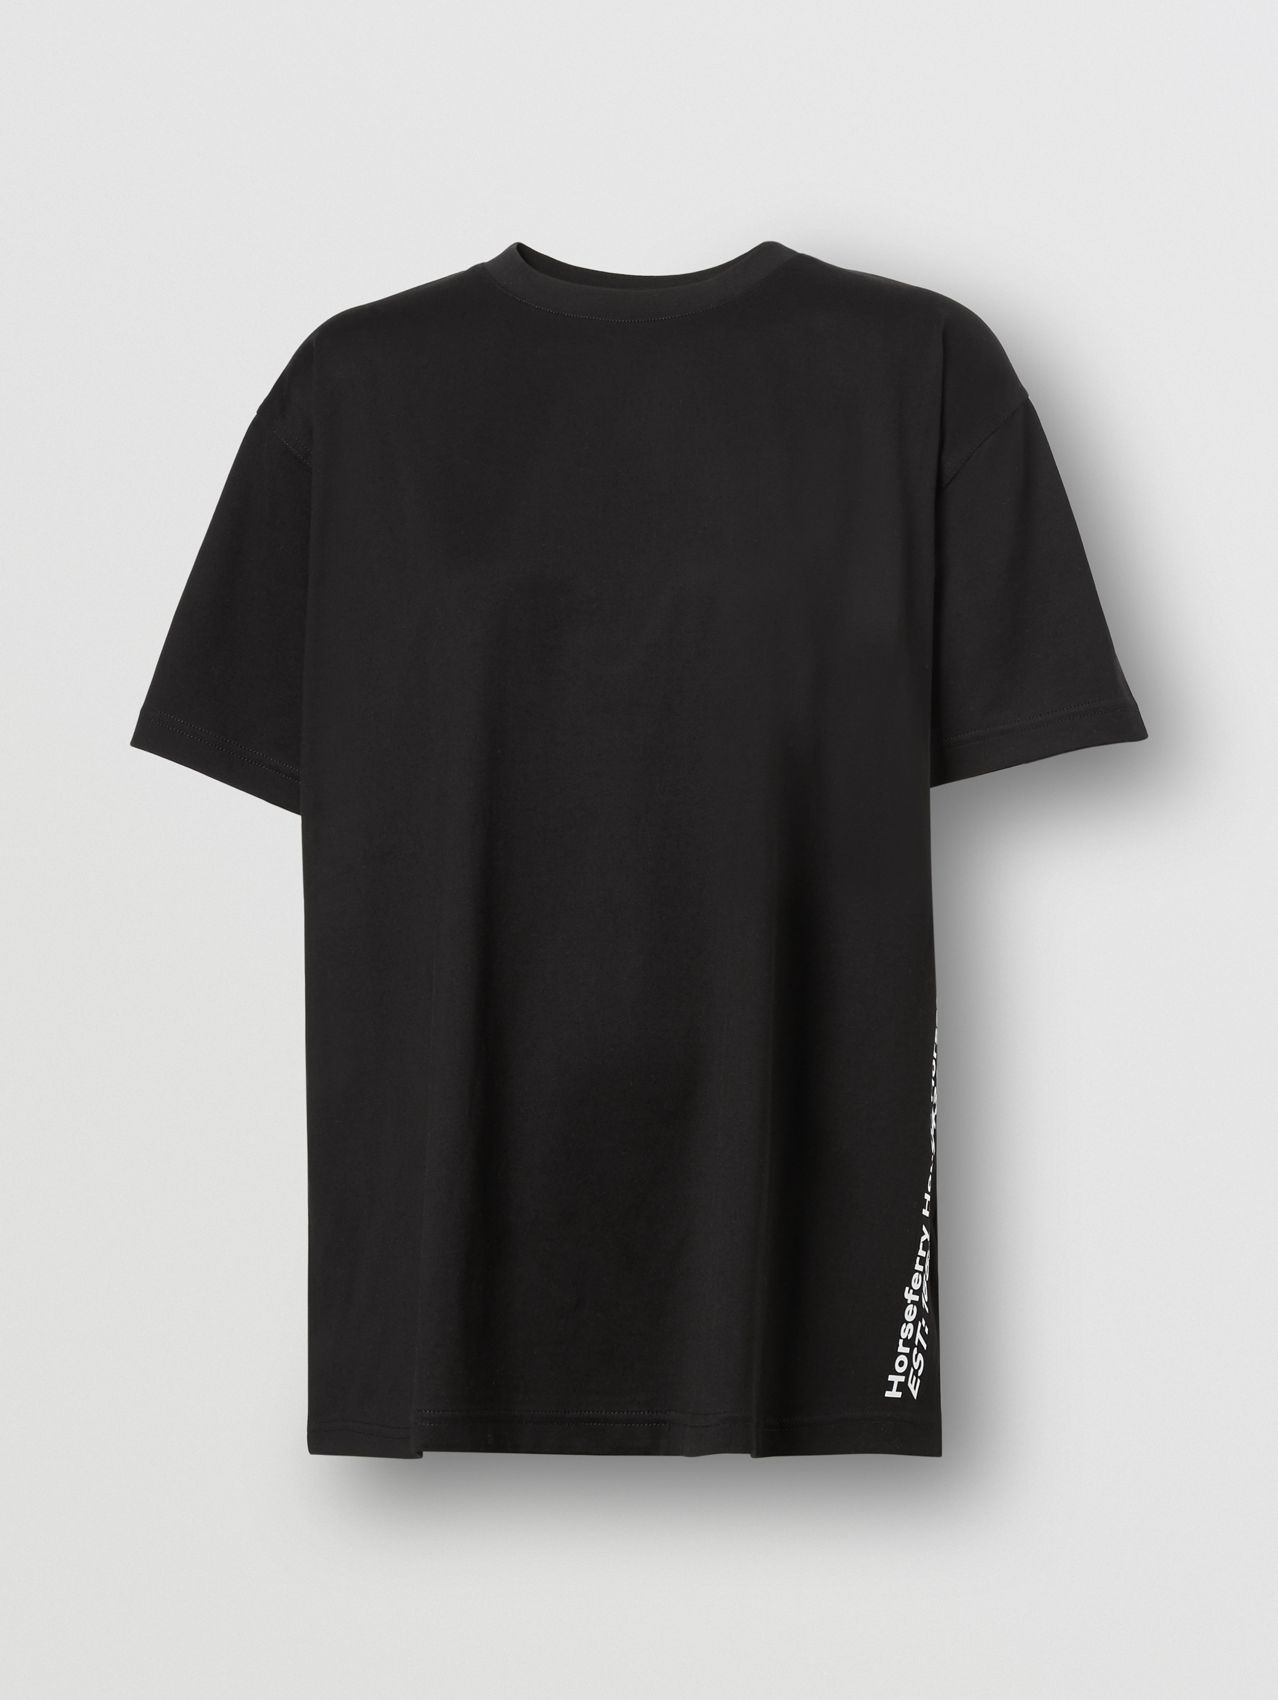 Coordinates Print Cotton Oversized T-shirt in Black